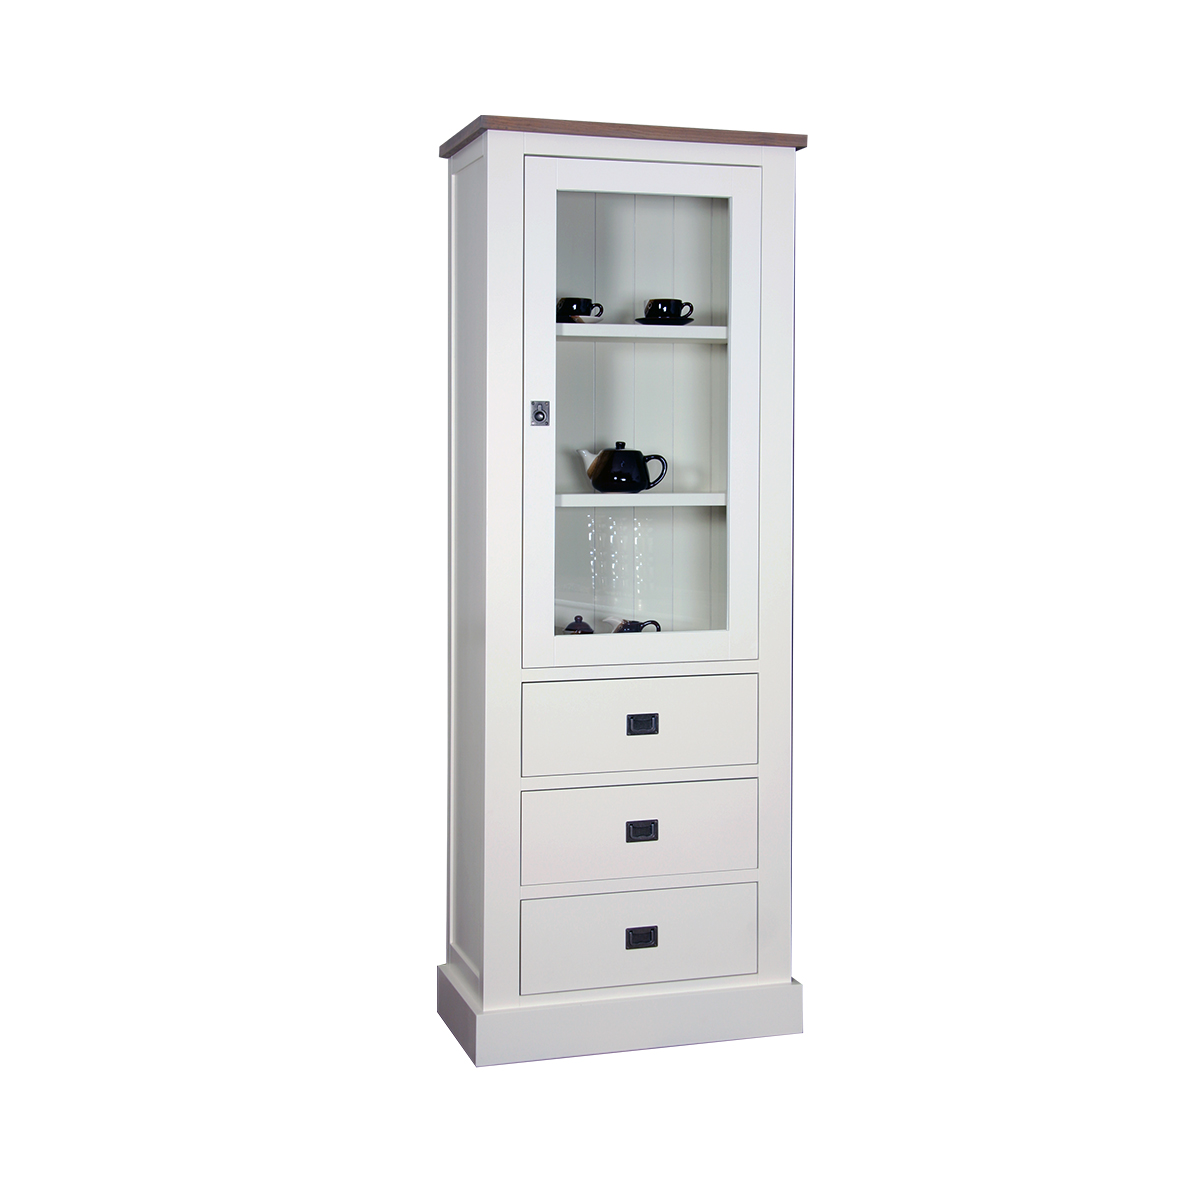 skandinavische vitrine oslo bei moebel trend 24 online kaufen moebel trend 24. Black Bedroom Furniture Sets. Home Design Ideas